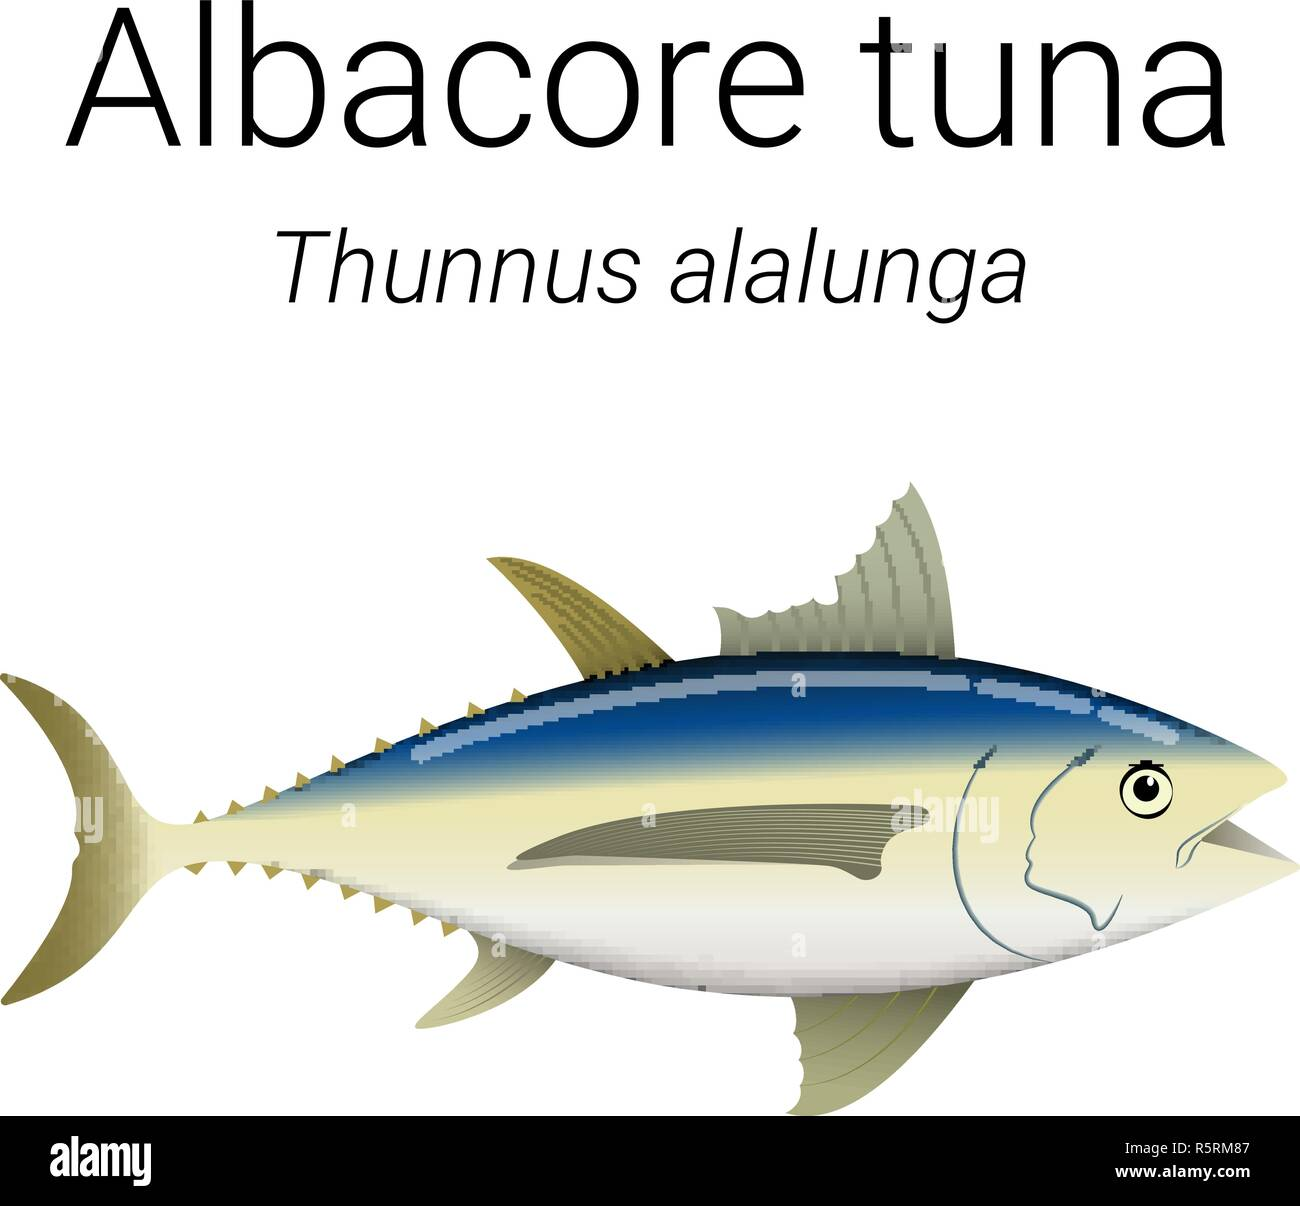 Albacore tuna - large migratory fish found throughout Pacific and Indian  Oceans illustration - Stock Vector